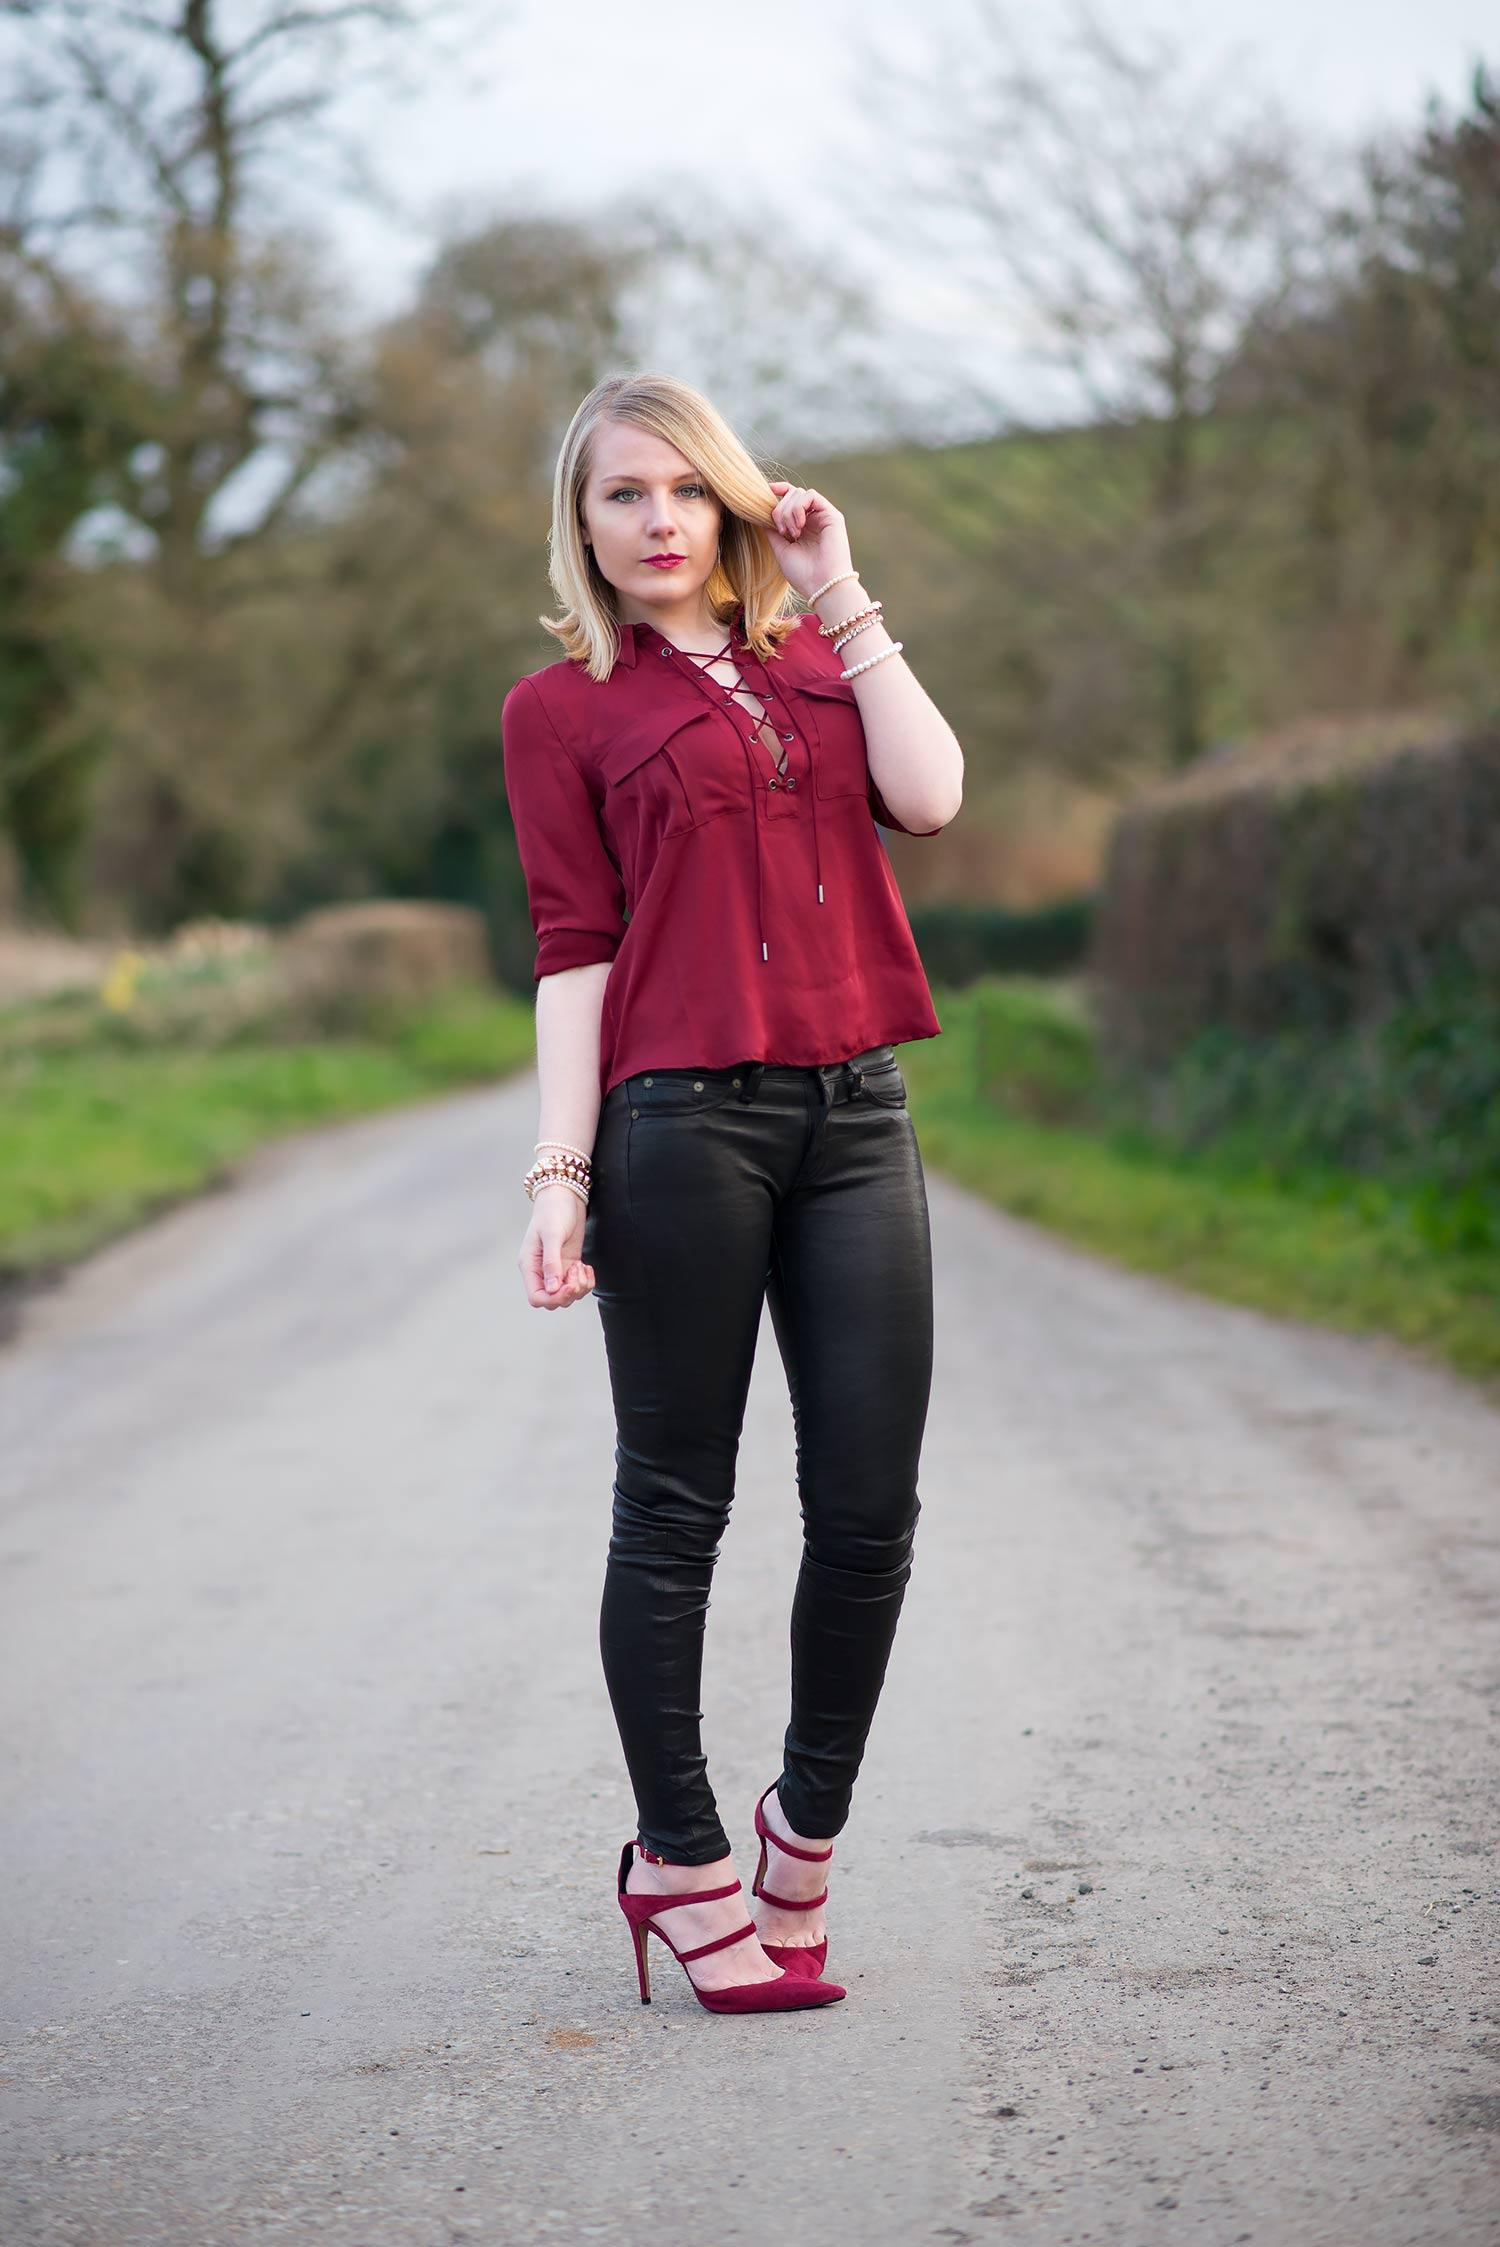 The Black Leather Pants & Maroon Lace Blouse | Raindrops ...